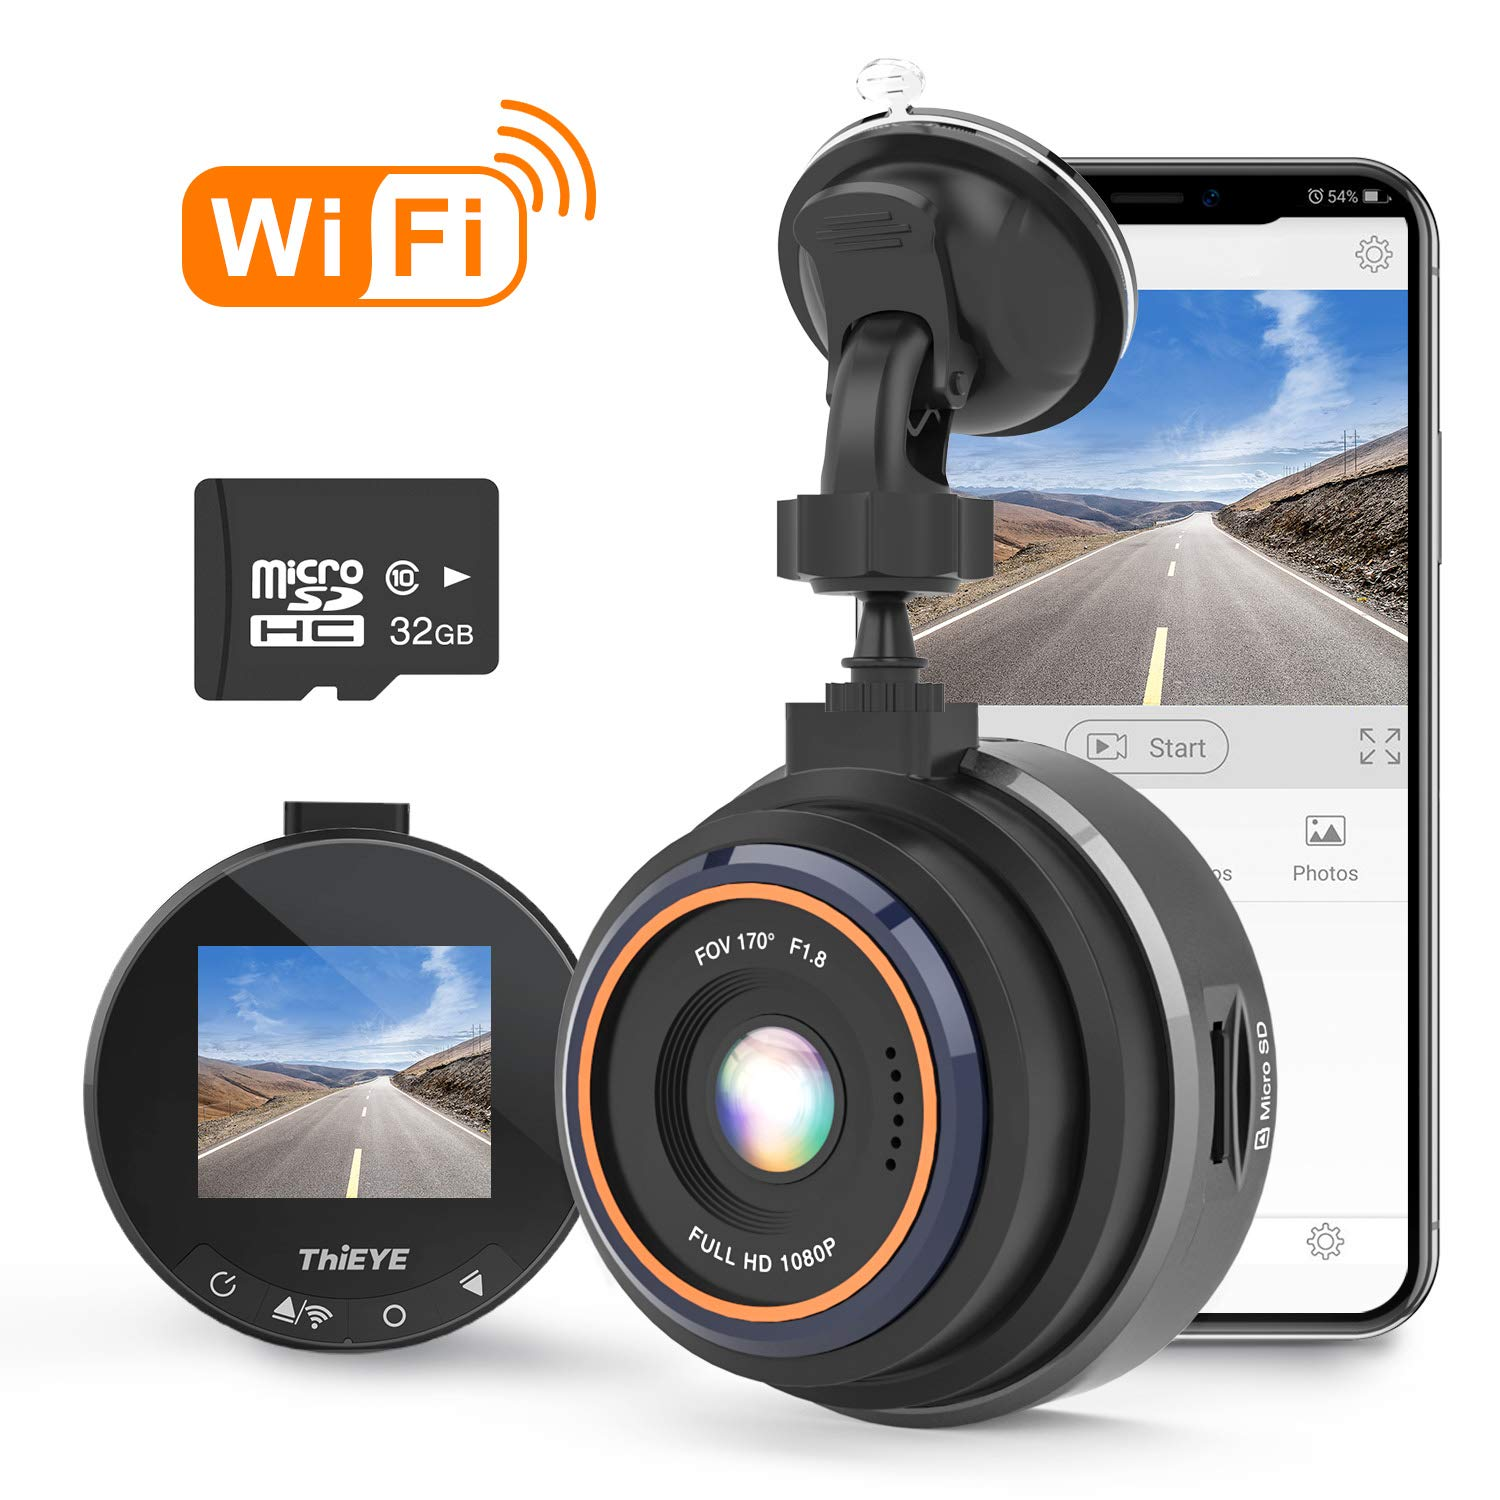 THiEYE Dash Cam WiFi, Dashcam for Car Driving Recorder 1080P FHD LCD Screen Driving Recorder, Phone App, Night Vision, Wide Angle Lens, G-Sensor, WDR, Loop Recording, SD Card Included by ThiEYE